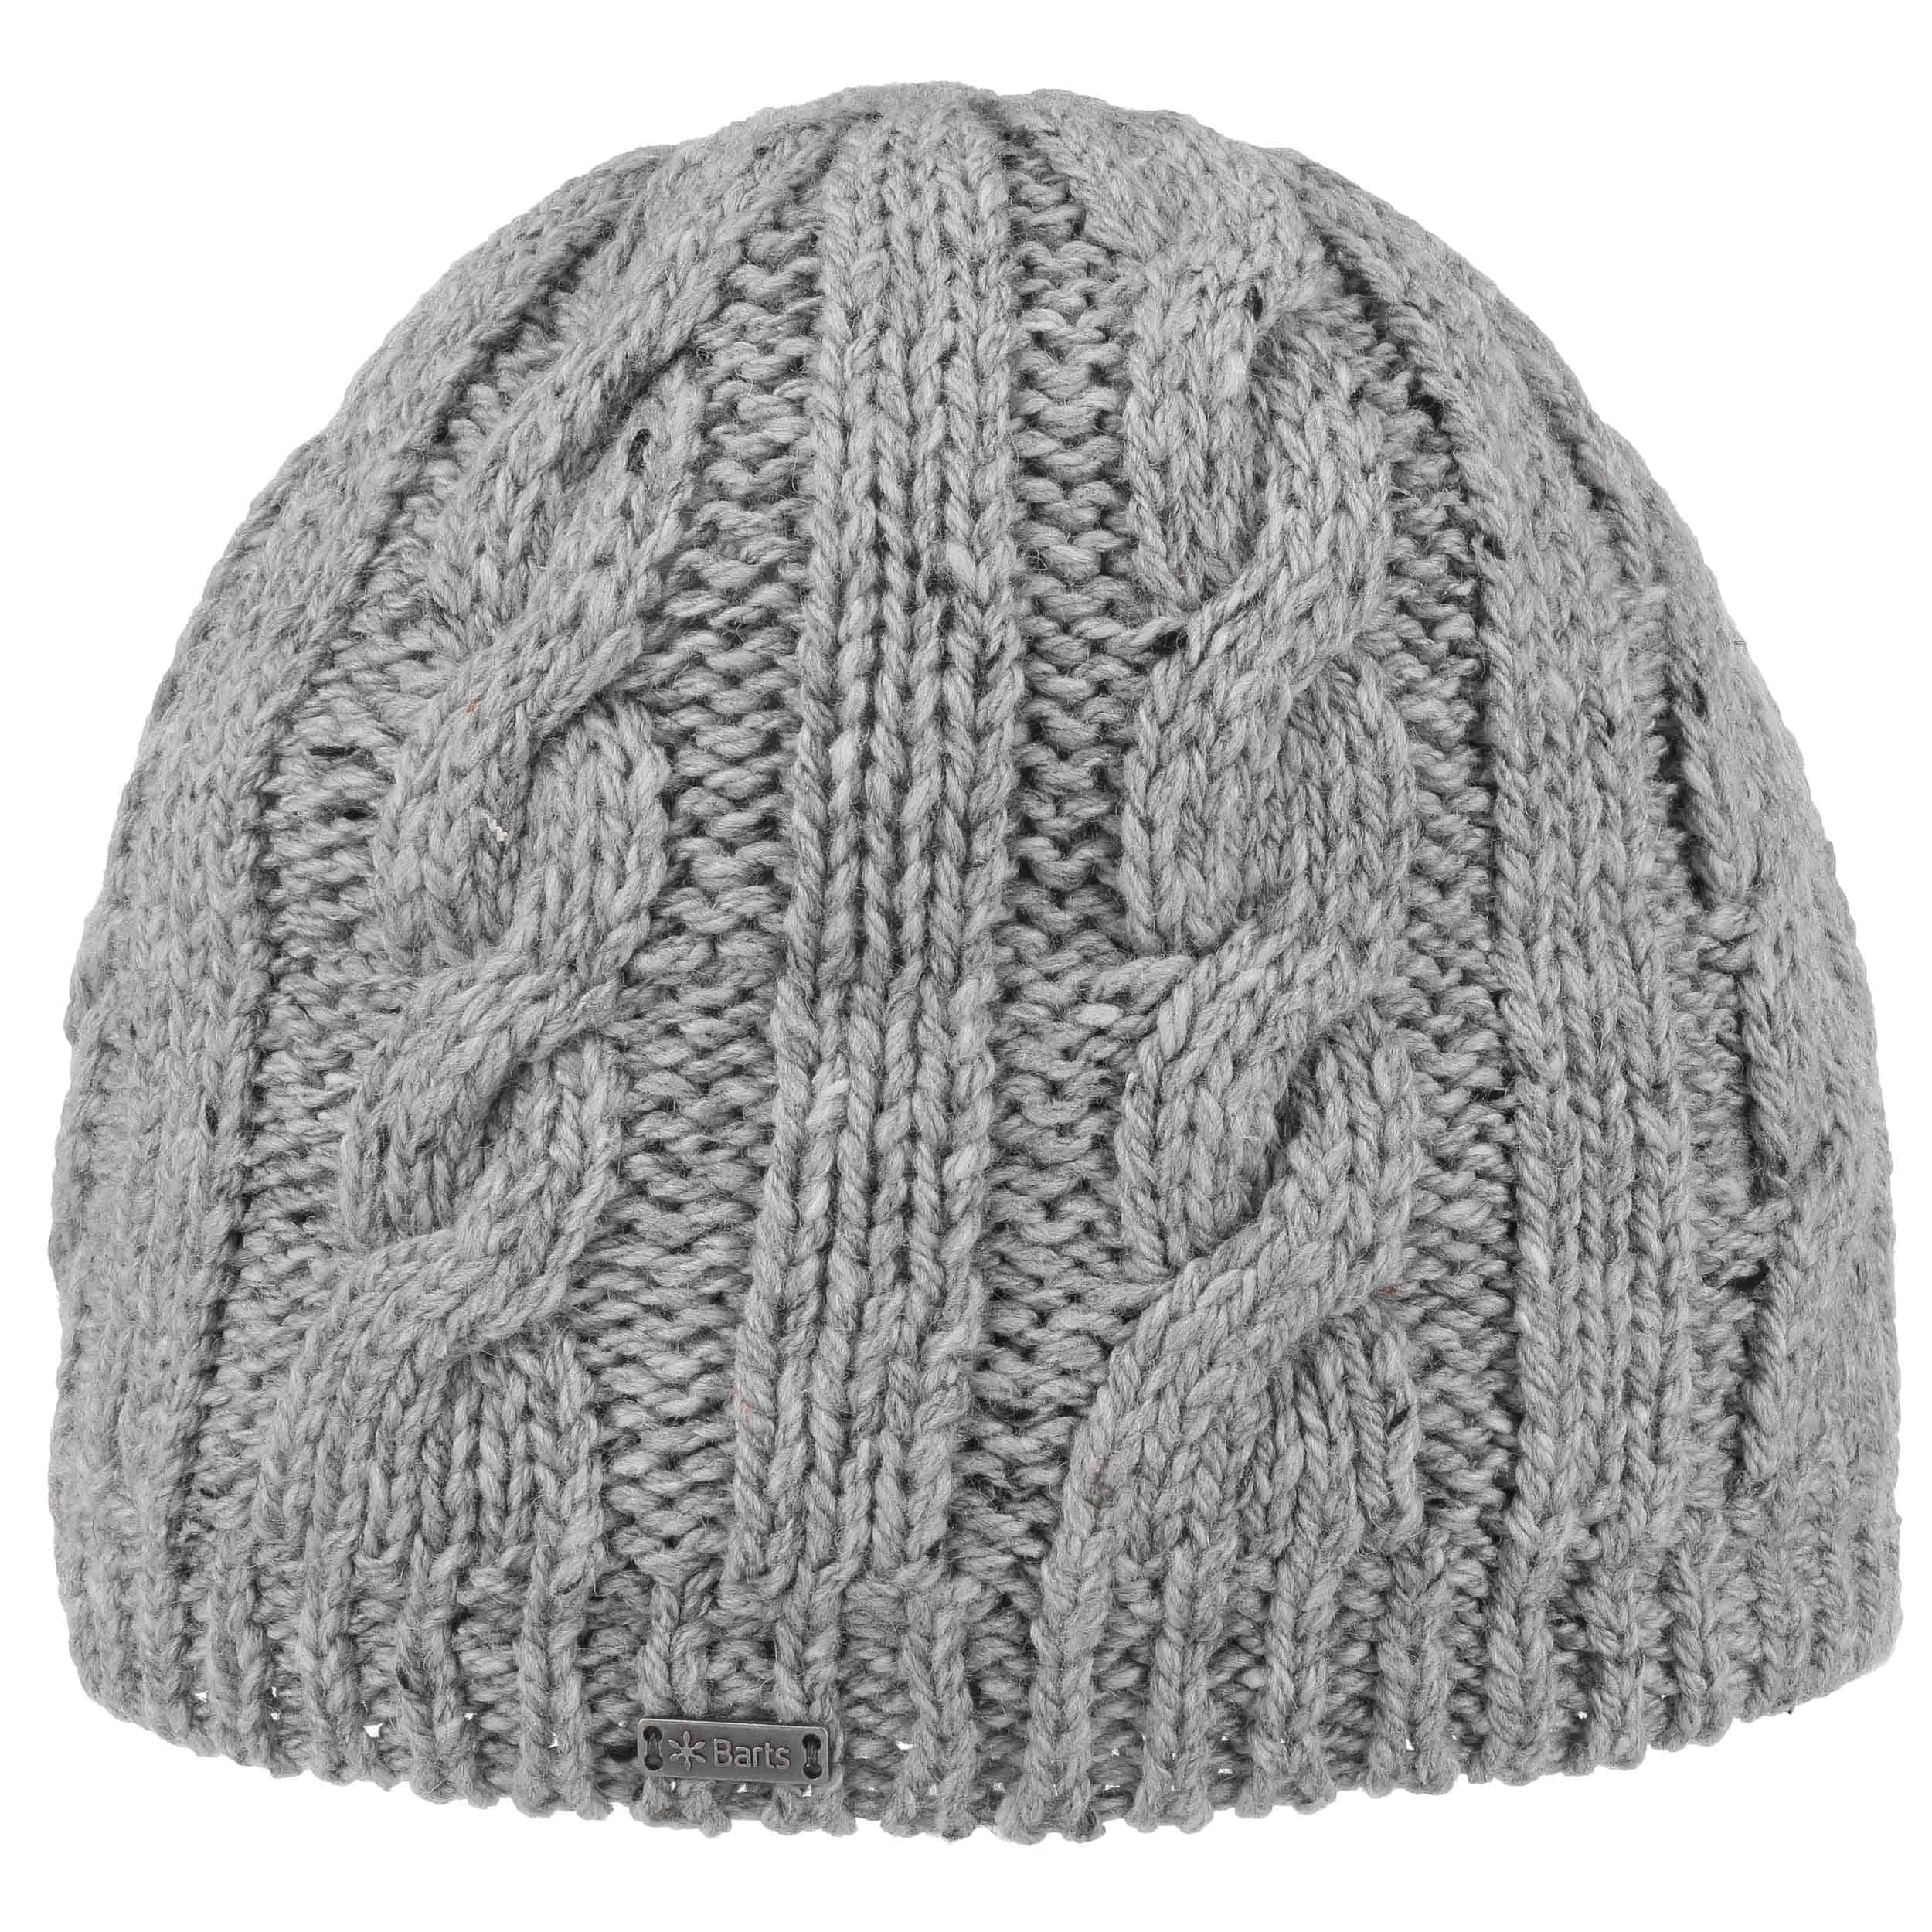 ... Gus Men´s Cable Knit Hat by Barts - grey 4 ... 719126f56ad